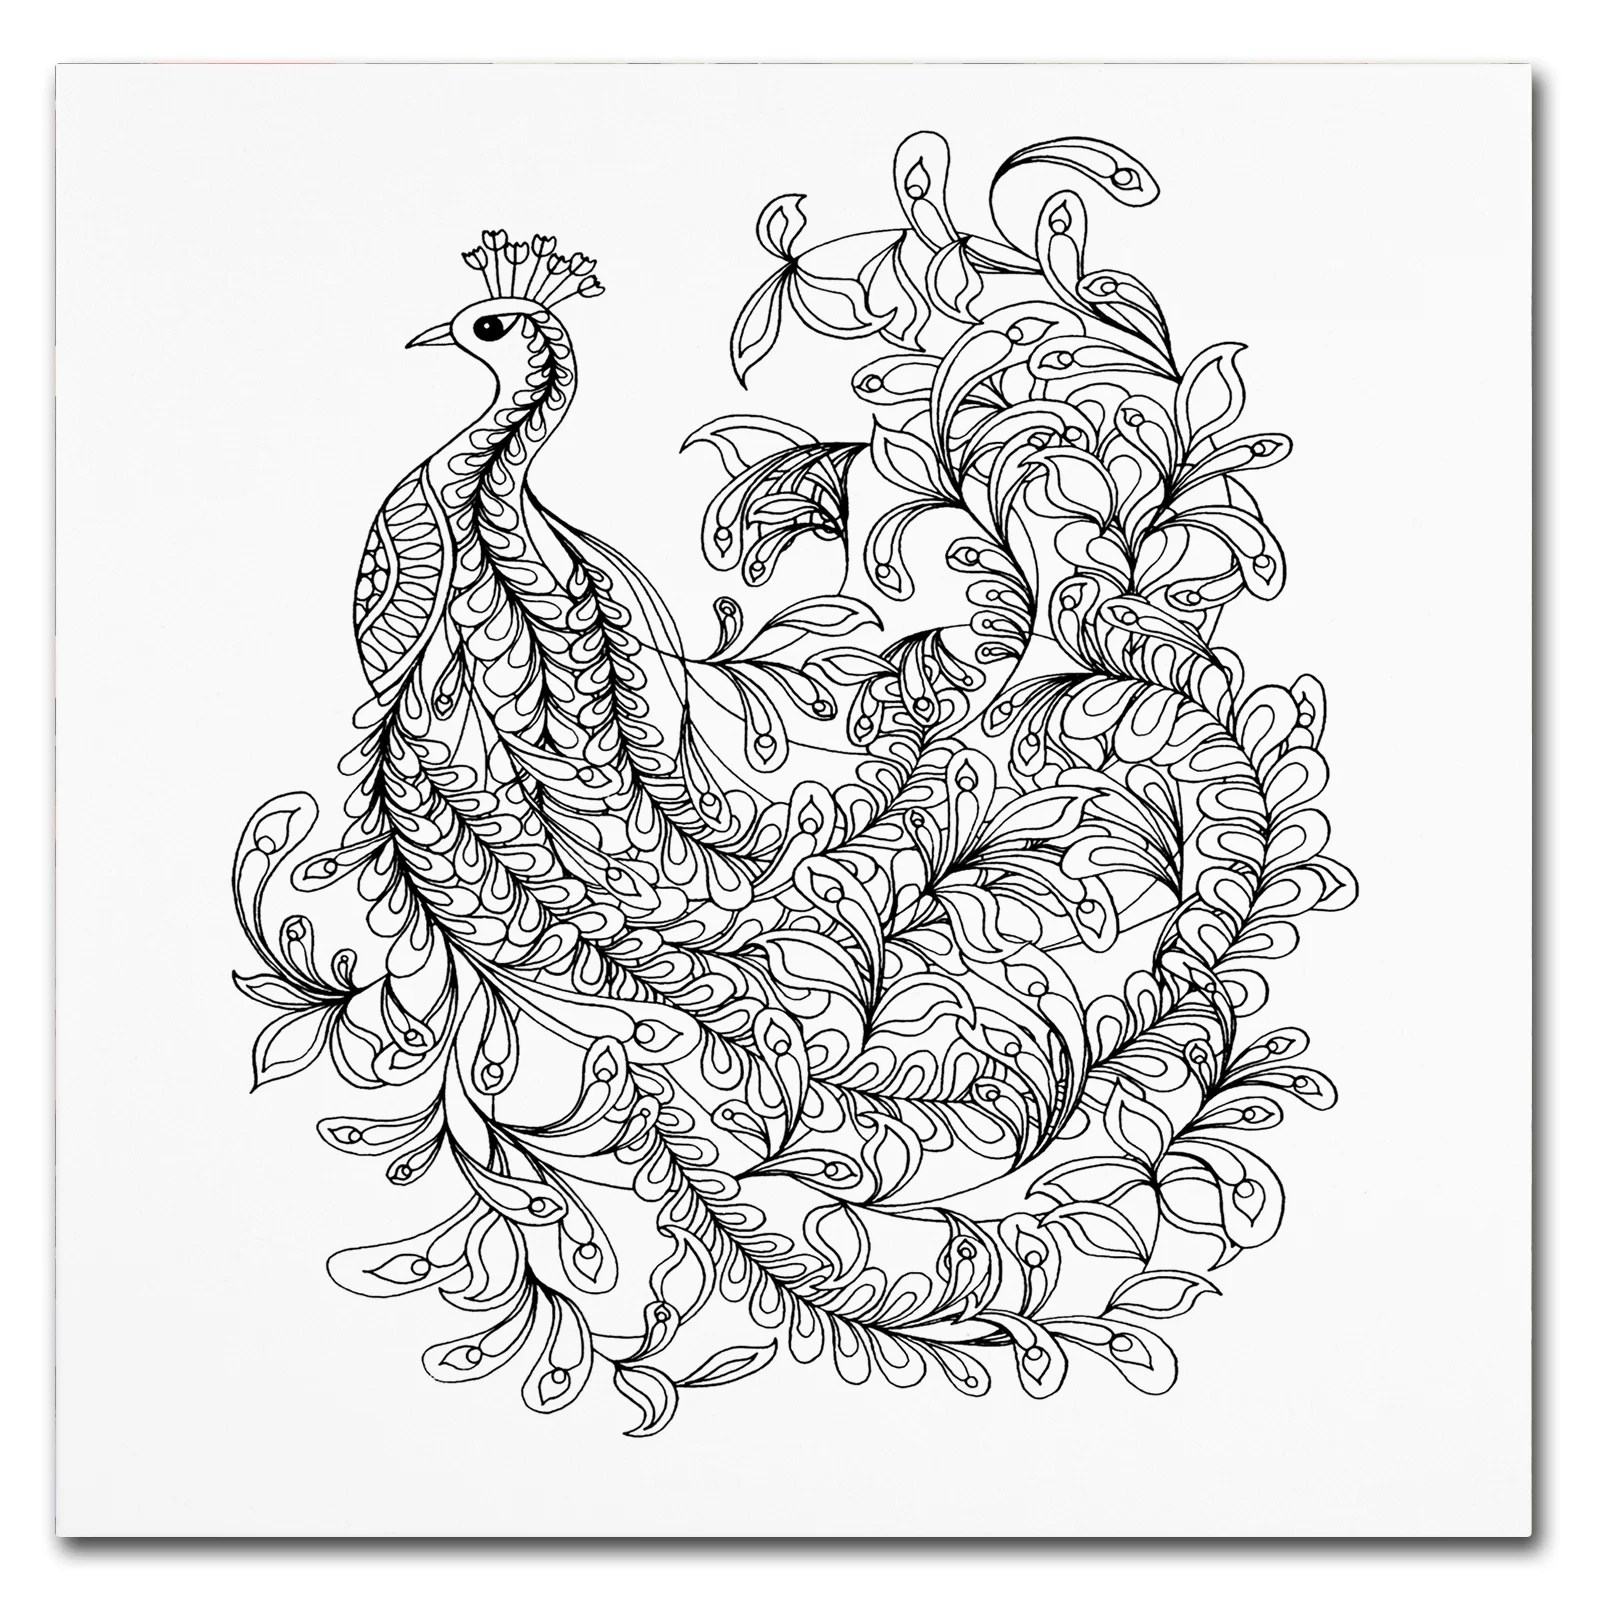 Trademark Art Fancy Peacock Drawing Print On Wrapped